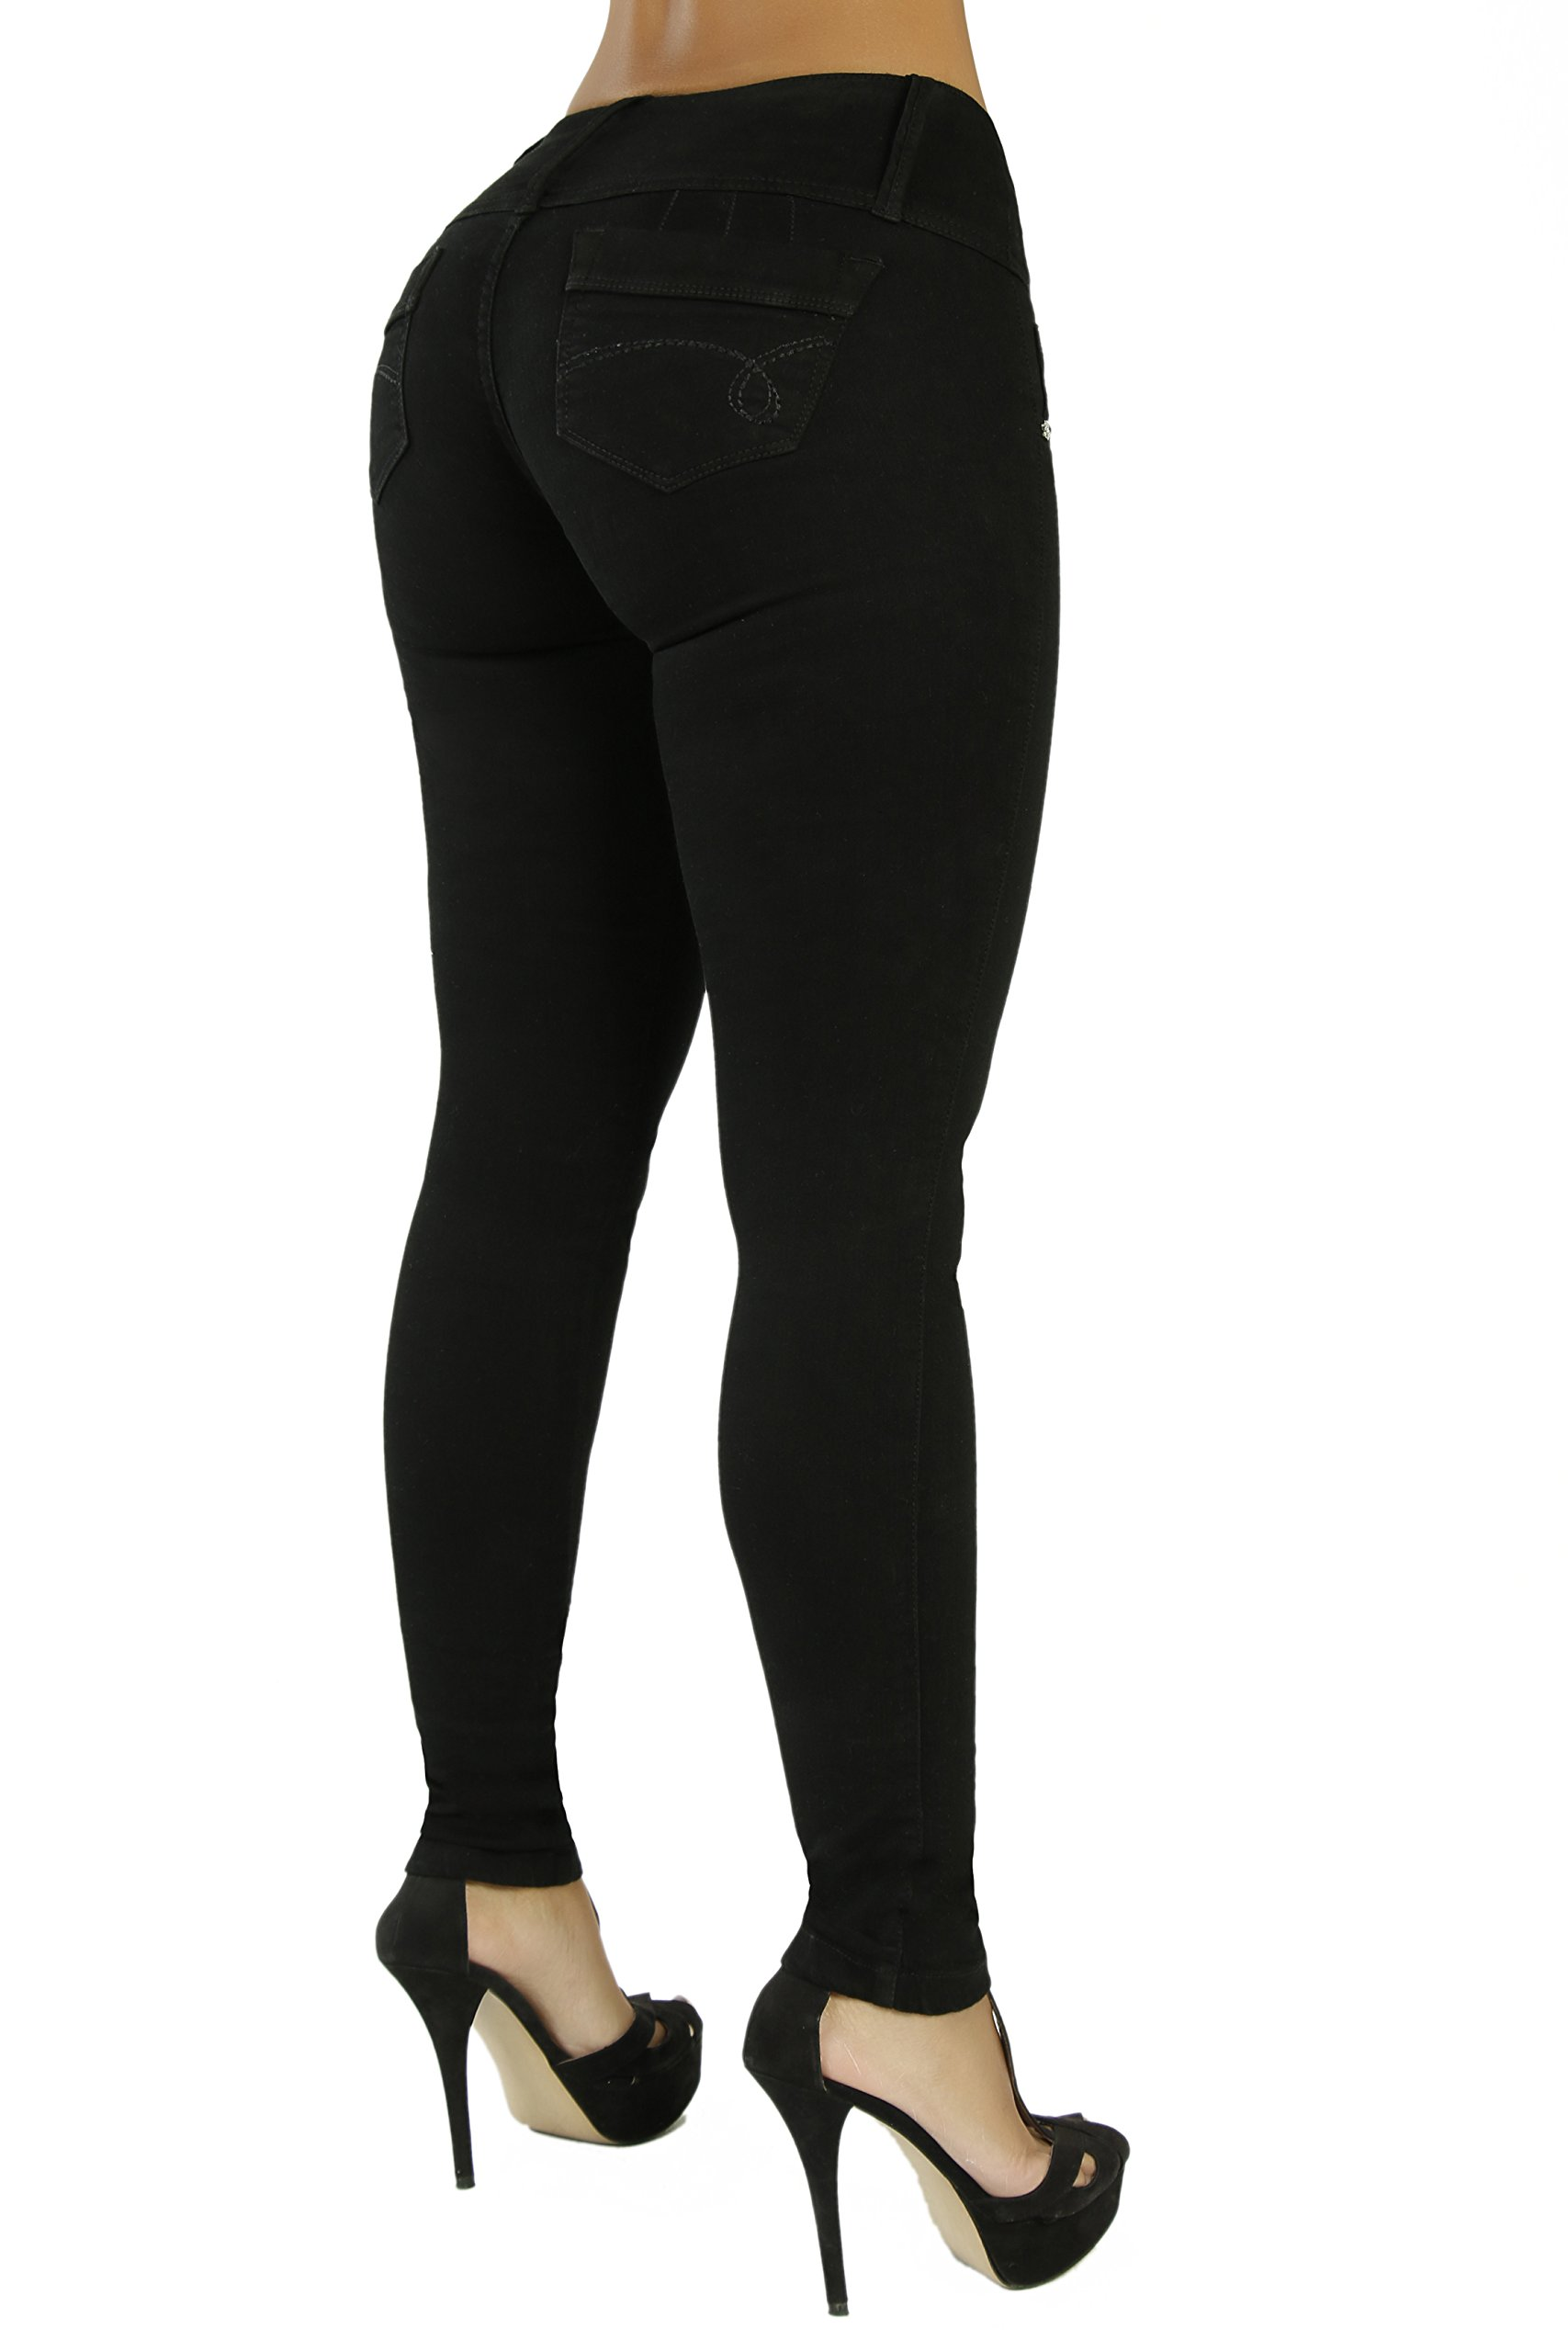 Curvify High Waisted Butt Lifting Slimming Jeans for Women - Skinny Stretch Jean 766(766, Black, 7) by Curvify (Image #2)